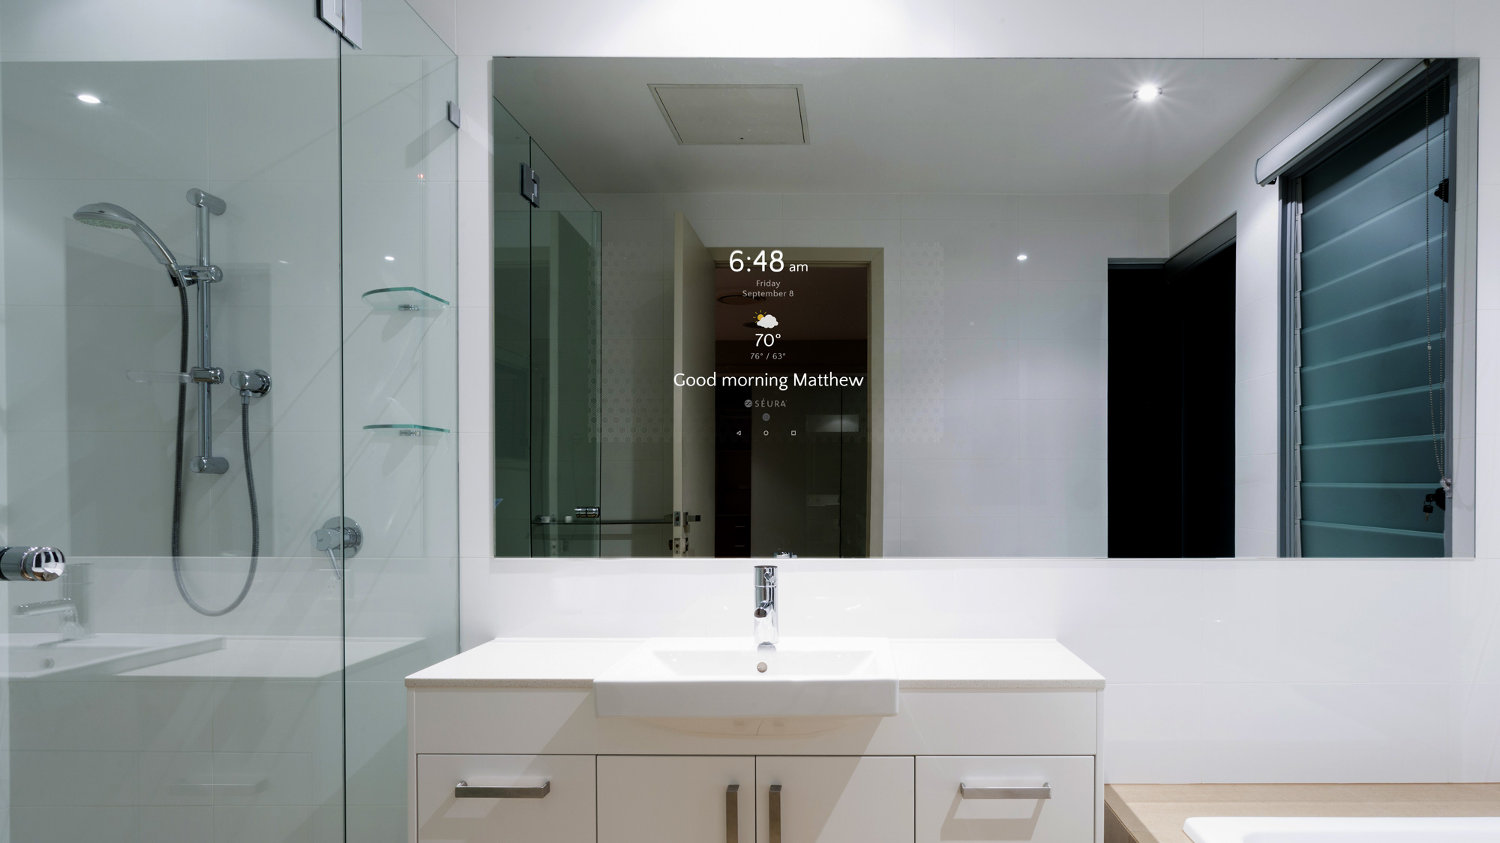 Global Smart Bathroom Market Size, Share - Industry Report, 2019-2024